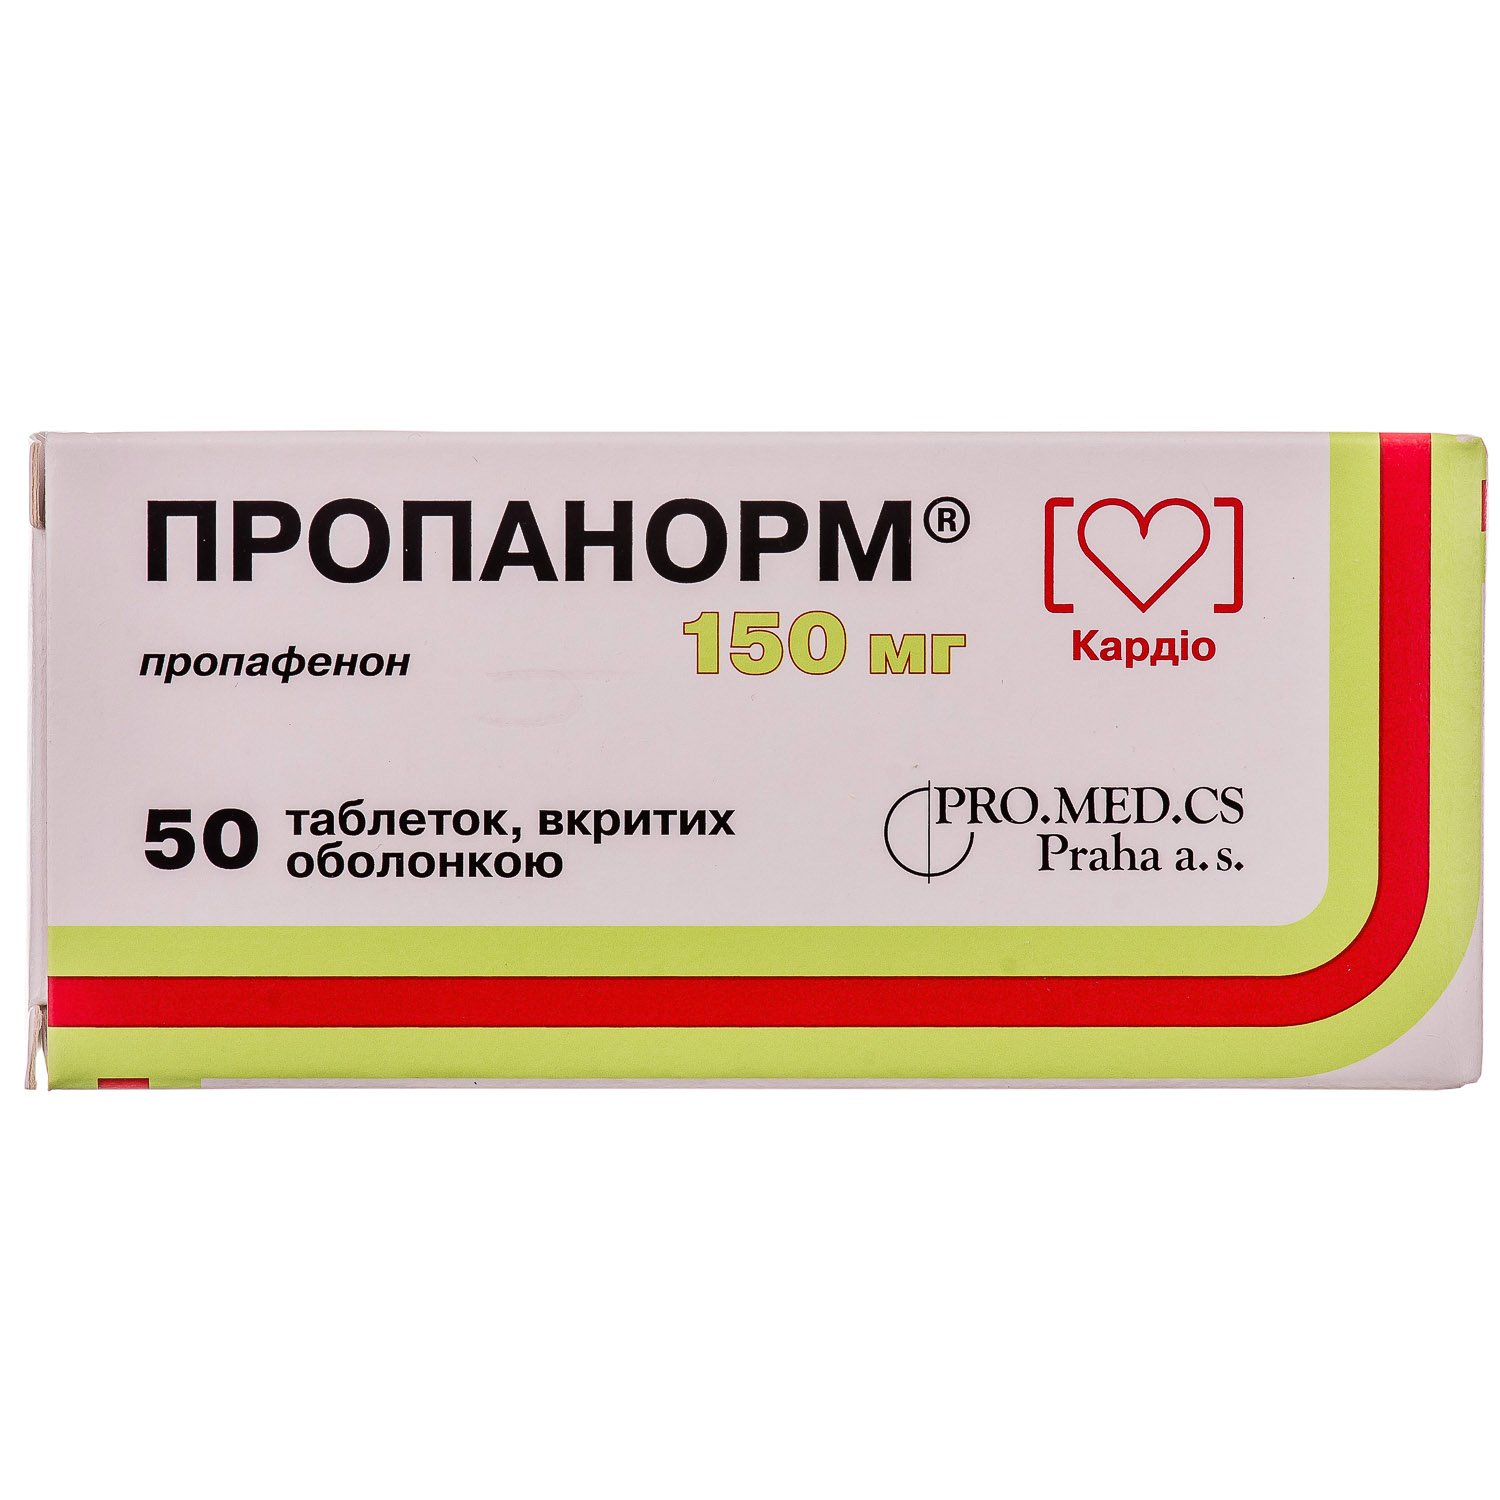 Propanorm (propafenone hydrochloride) coated tablets 150 mg. №50